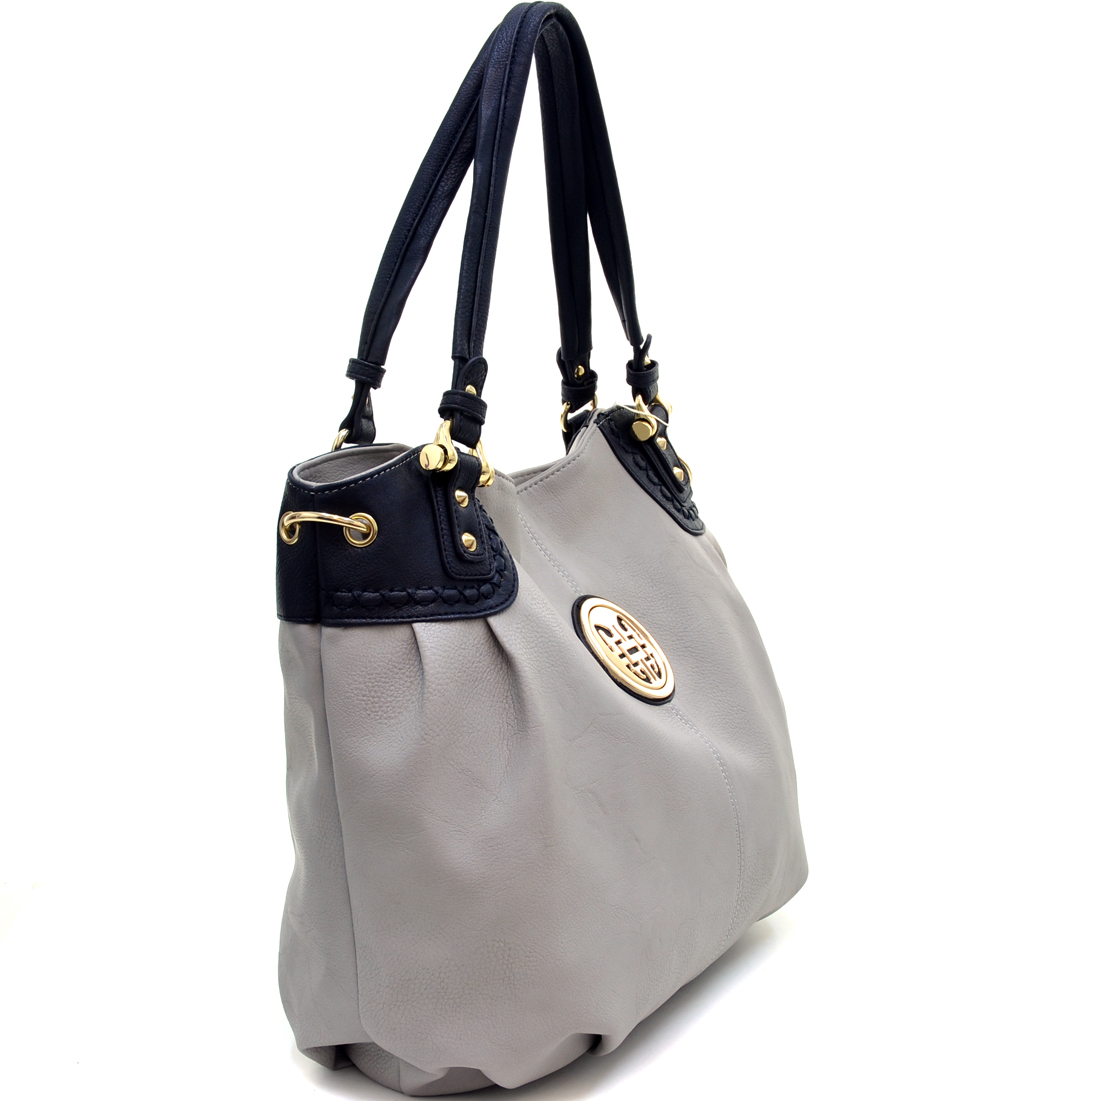 Two Tone Shoulder Bag With Gold Logo Accent